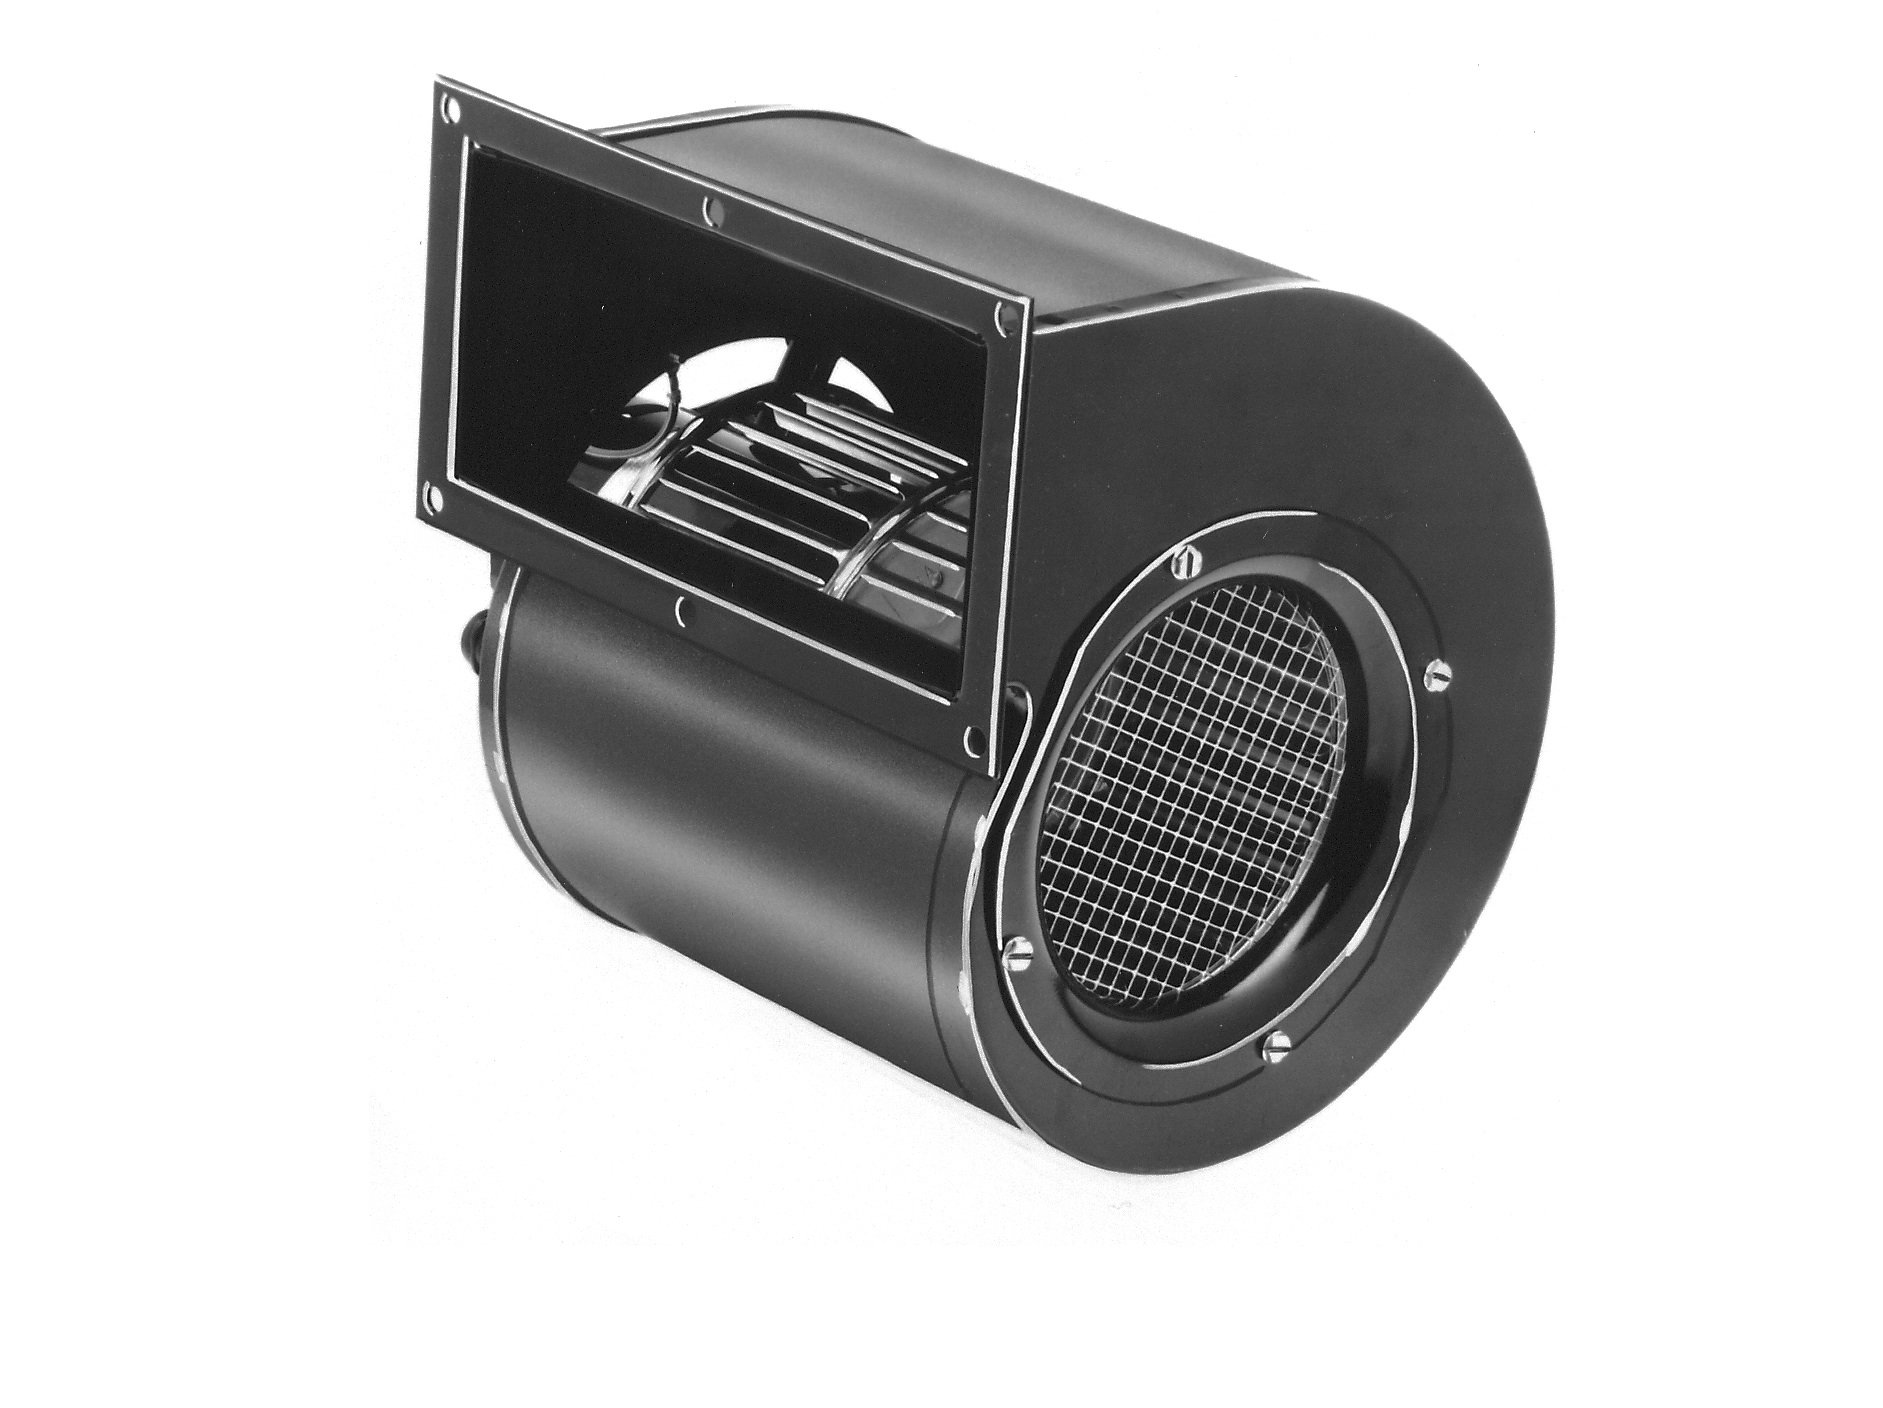 Fasco B45267 Centrifugal Blower with Sleeve Bearing, 1,600/1,400 rpm, 115V, 60Hz, 2.9 amps